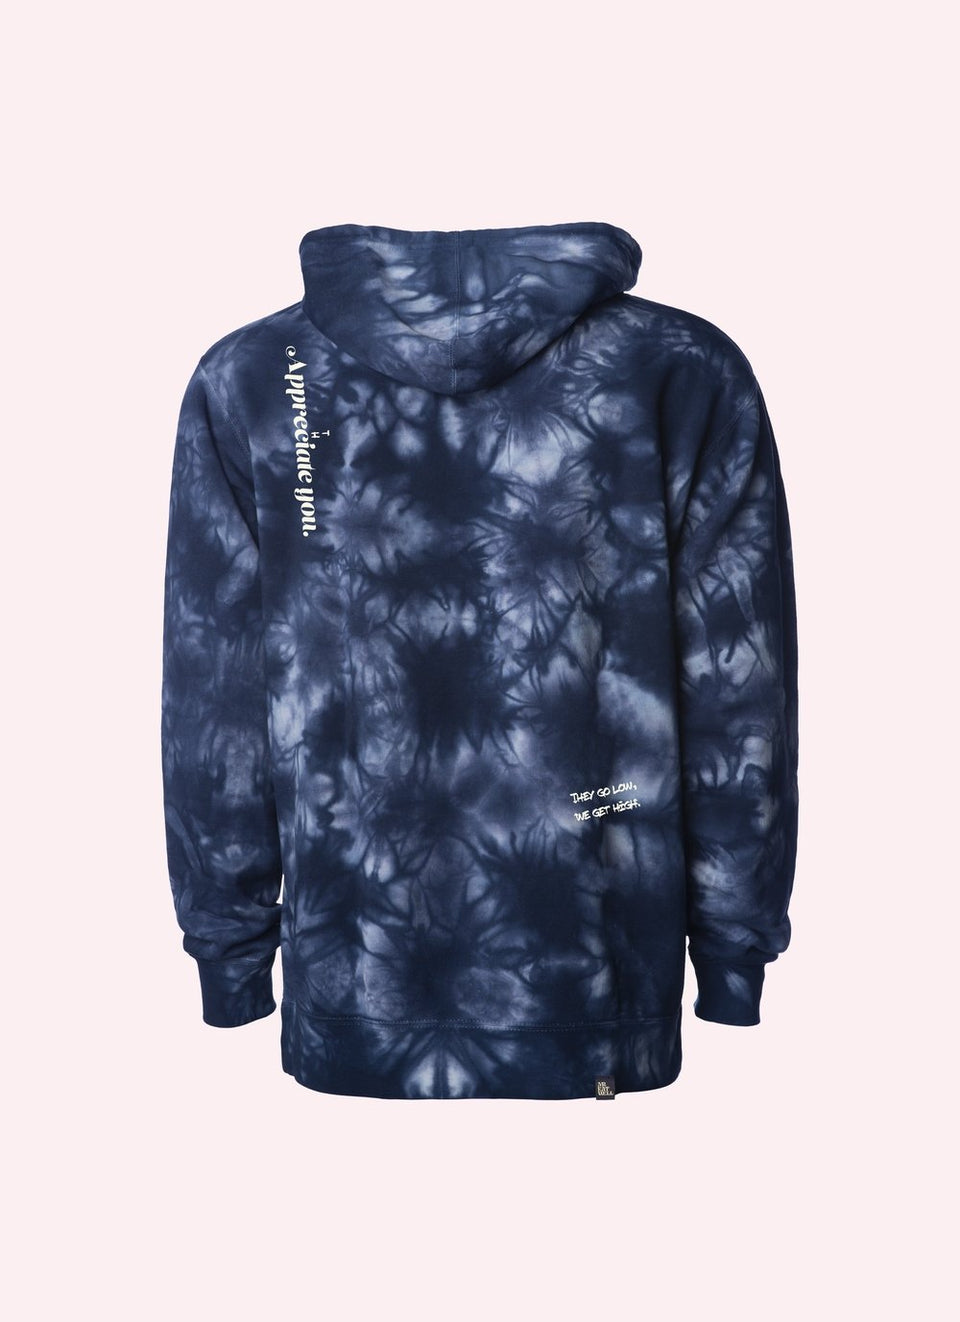 "ROLLUROWN Candy Bar Hoodie w/ Doob Tube + Special Pocket in ""Hot Boxed"" Navy Tie Dye - MR EATWELL"